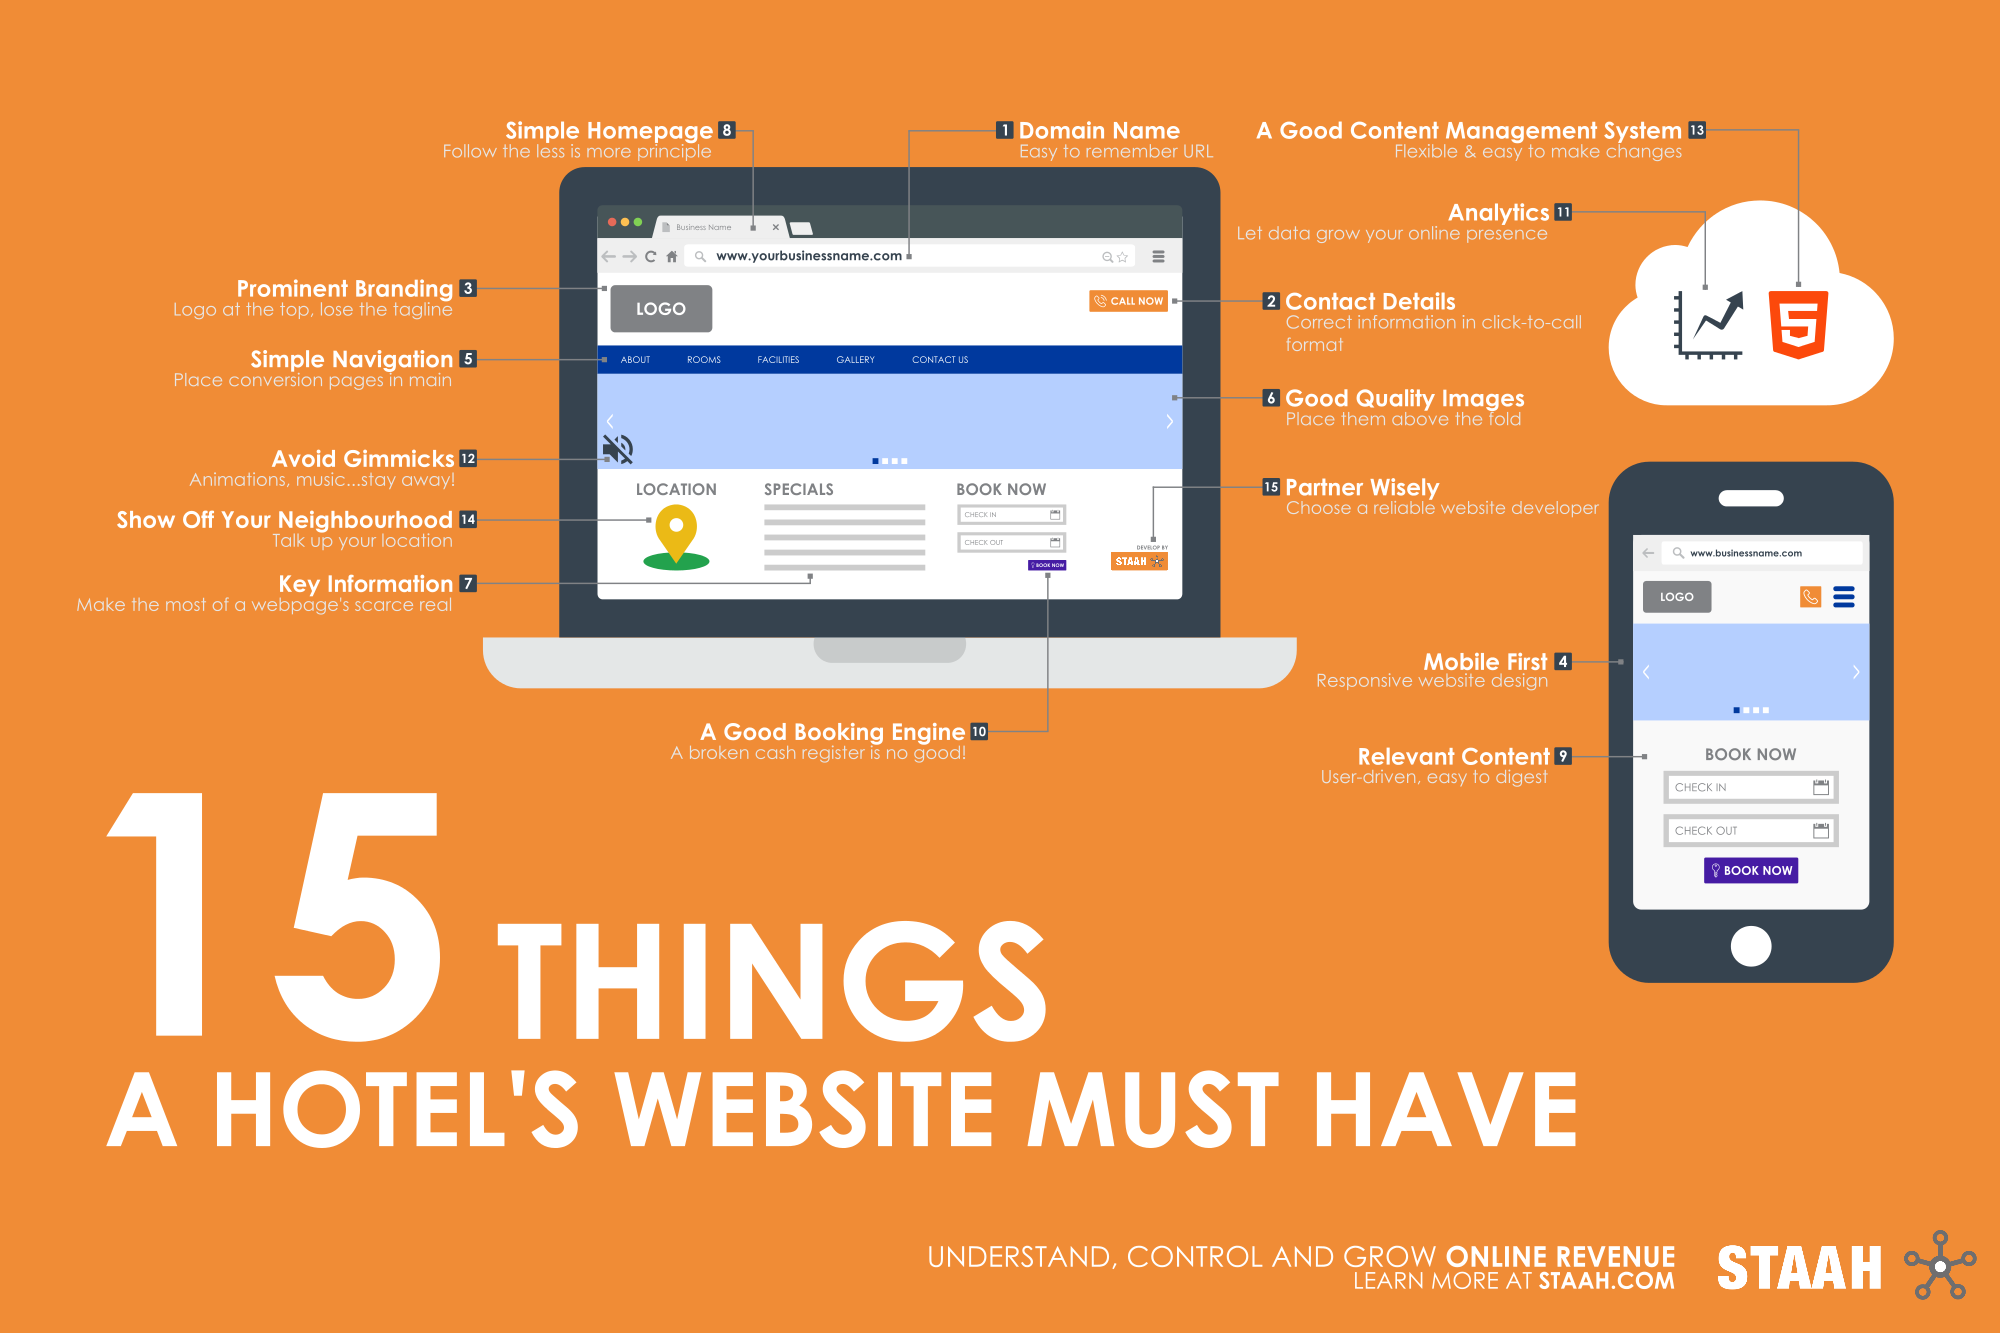 15 Things a Hotel's Website Must Have